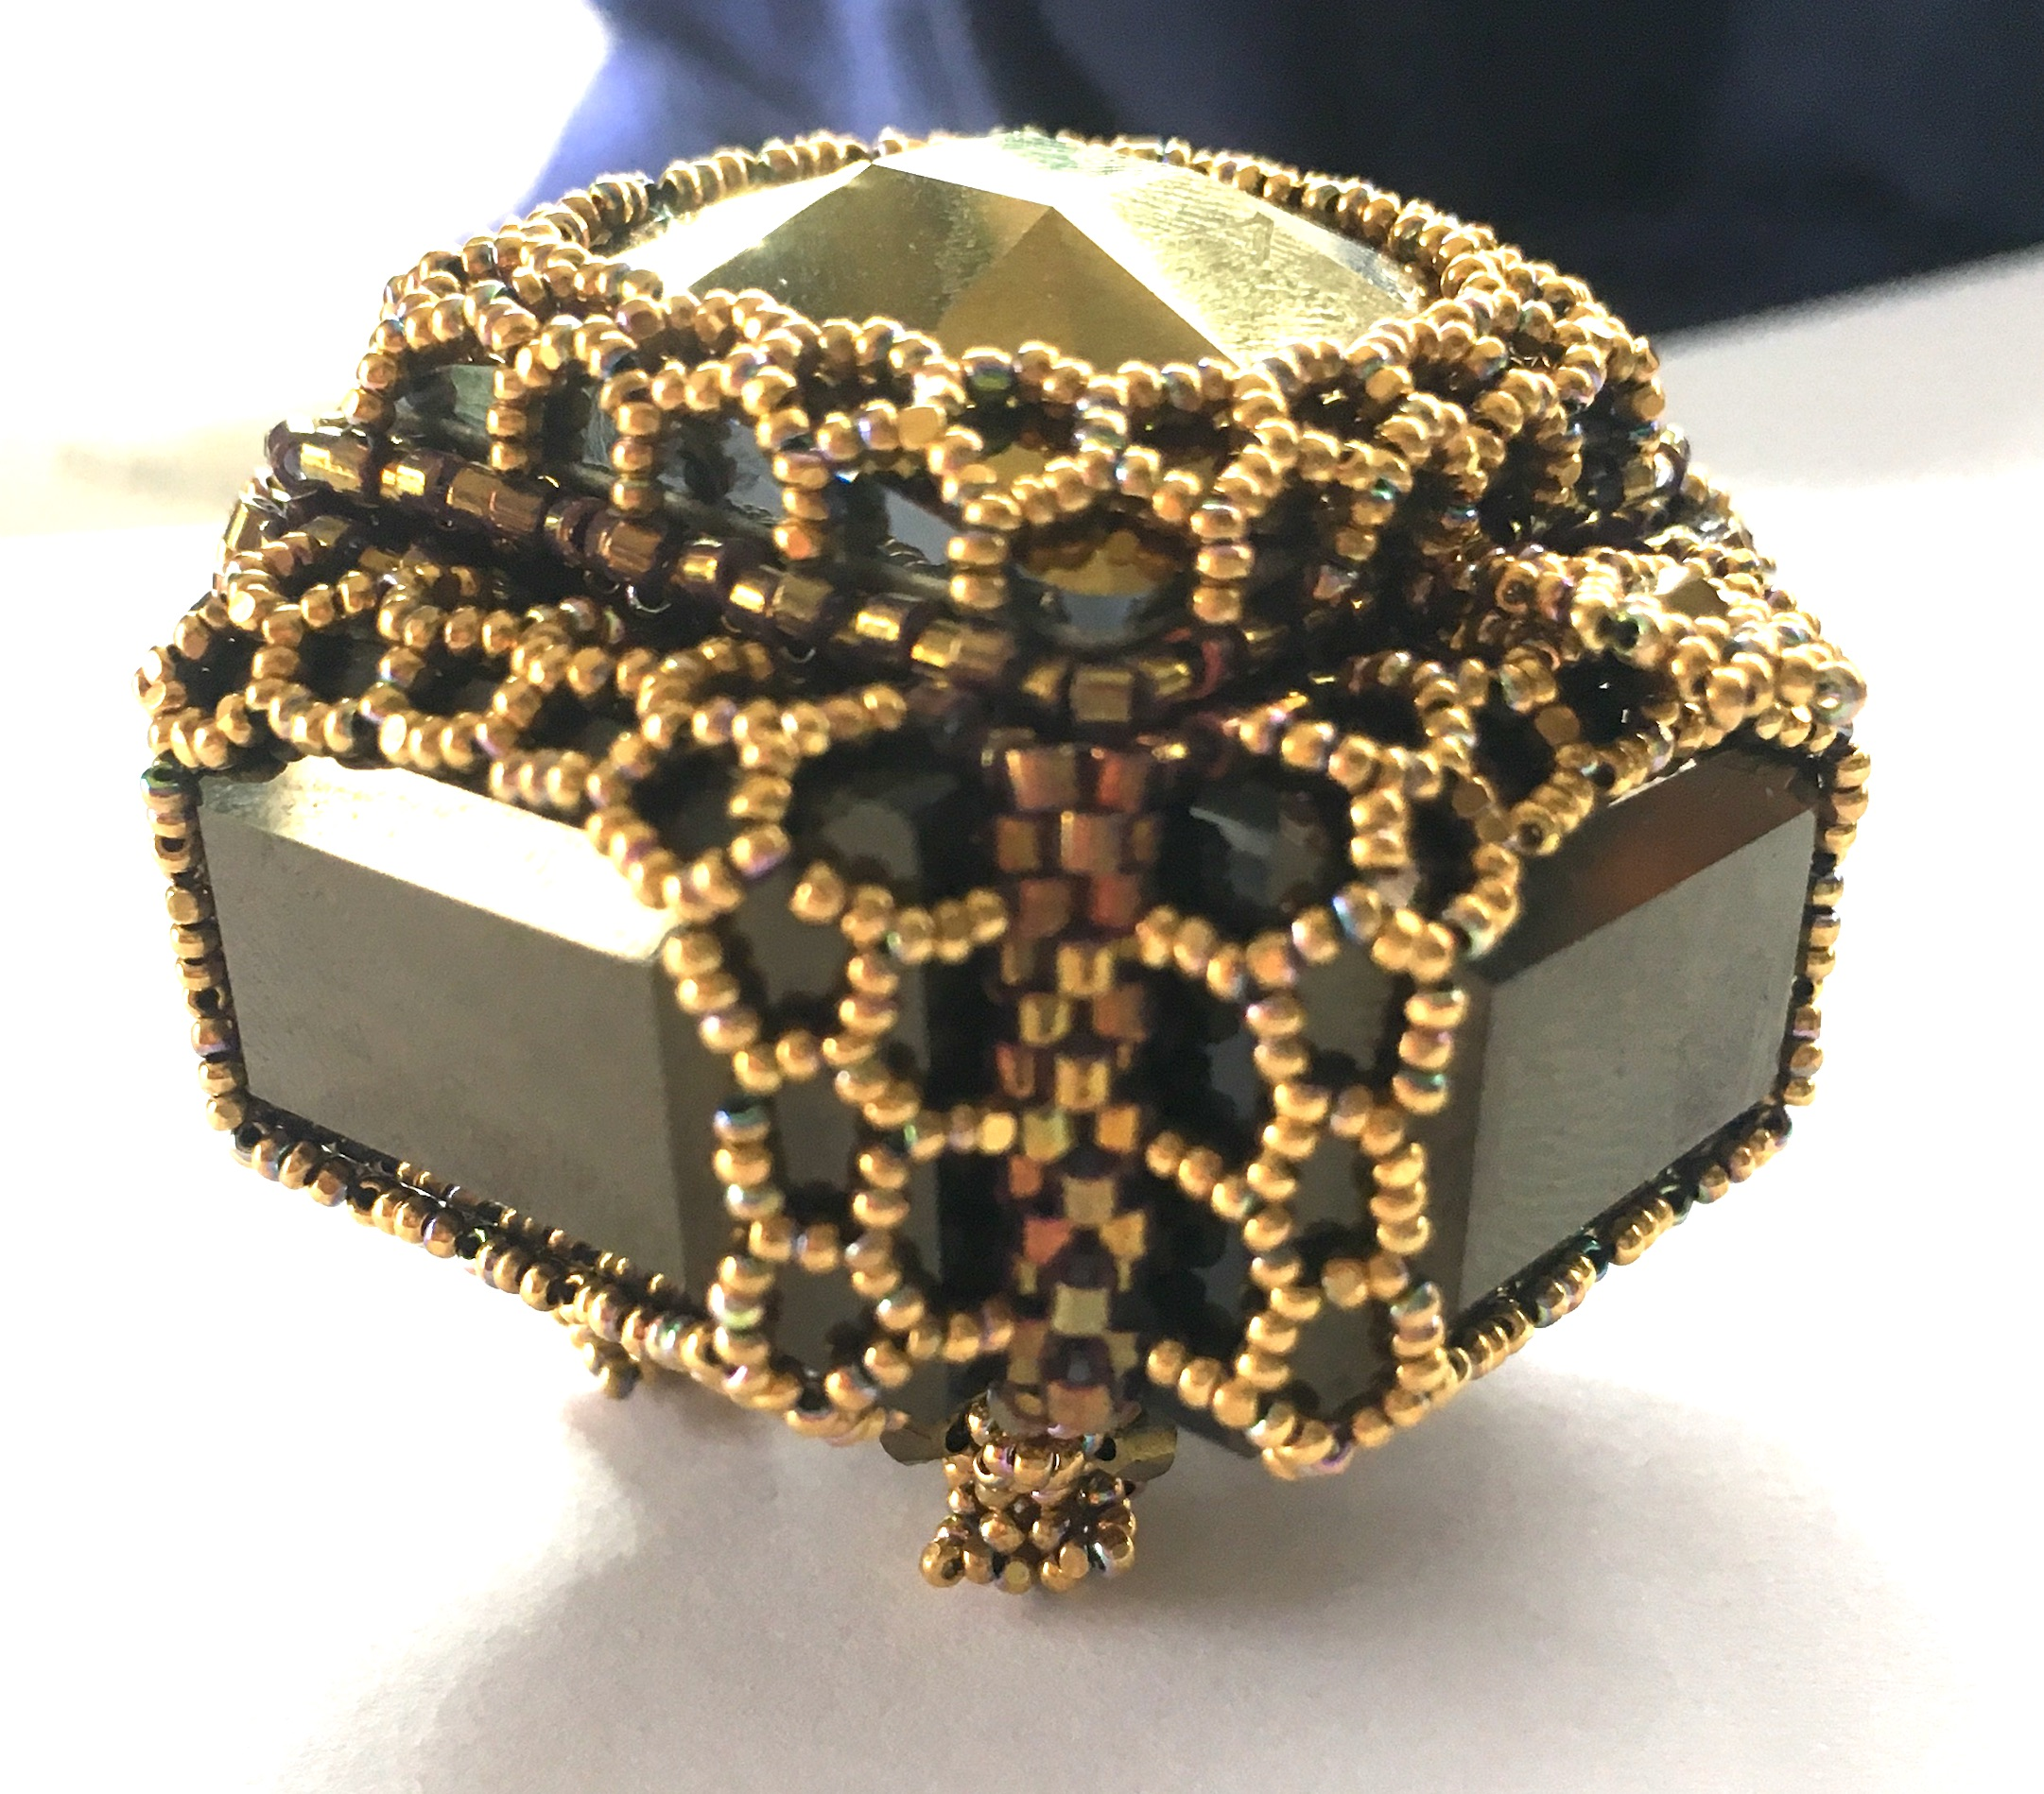 Boîte à Bijoux in Dorado and Jet Nut is a delicate beaded box.